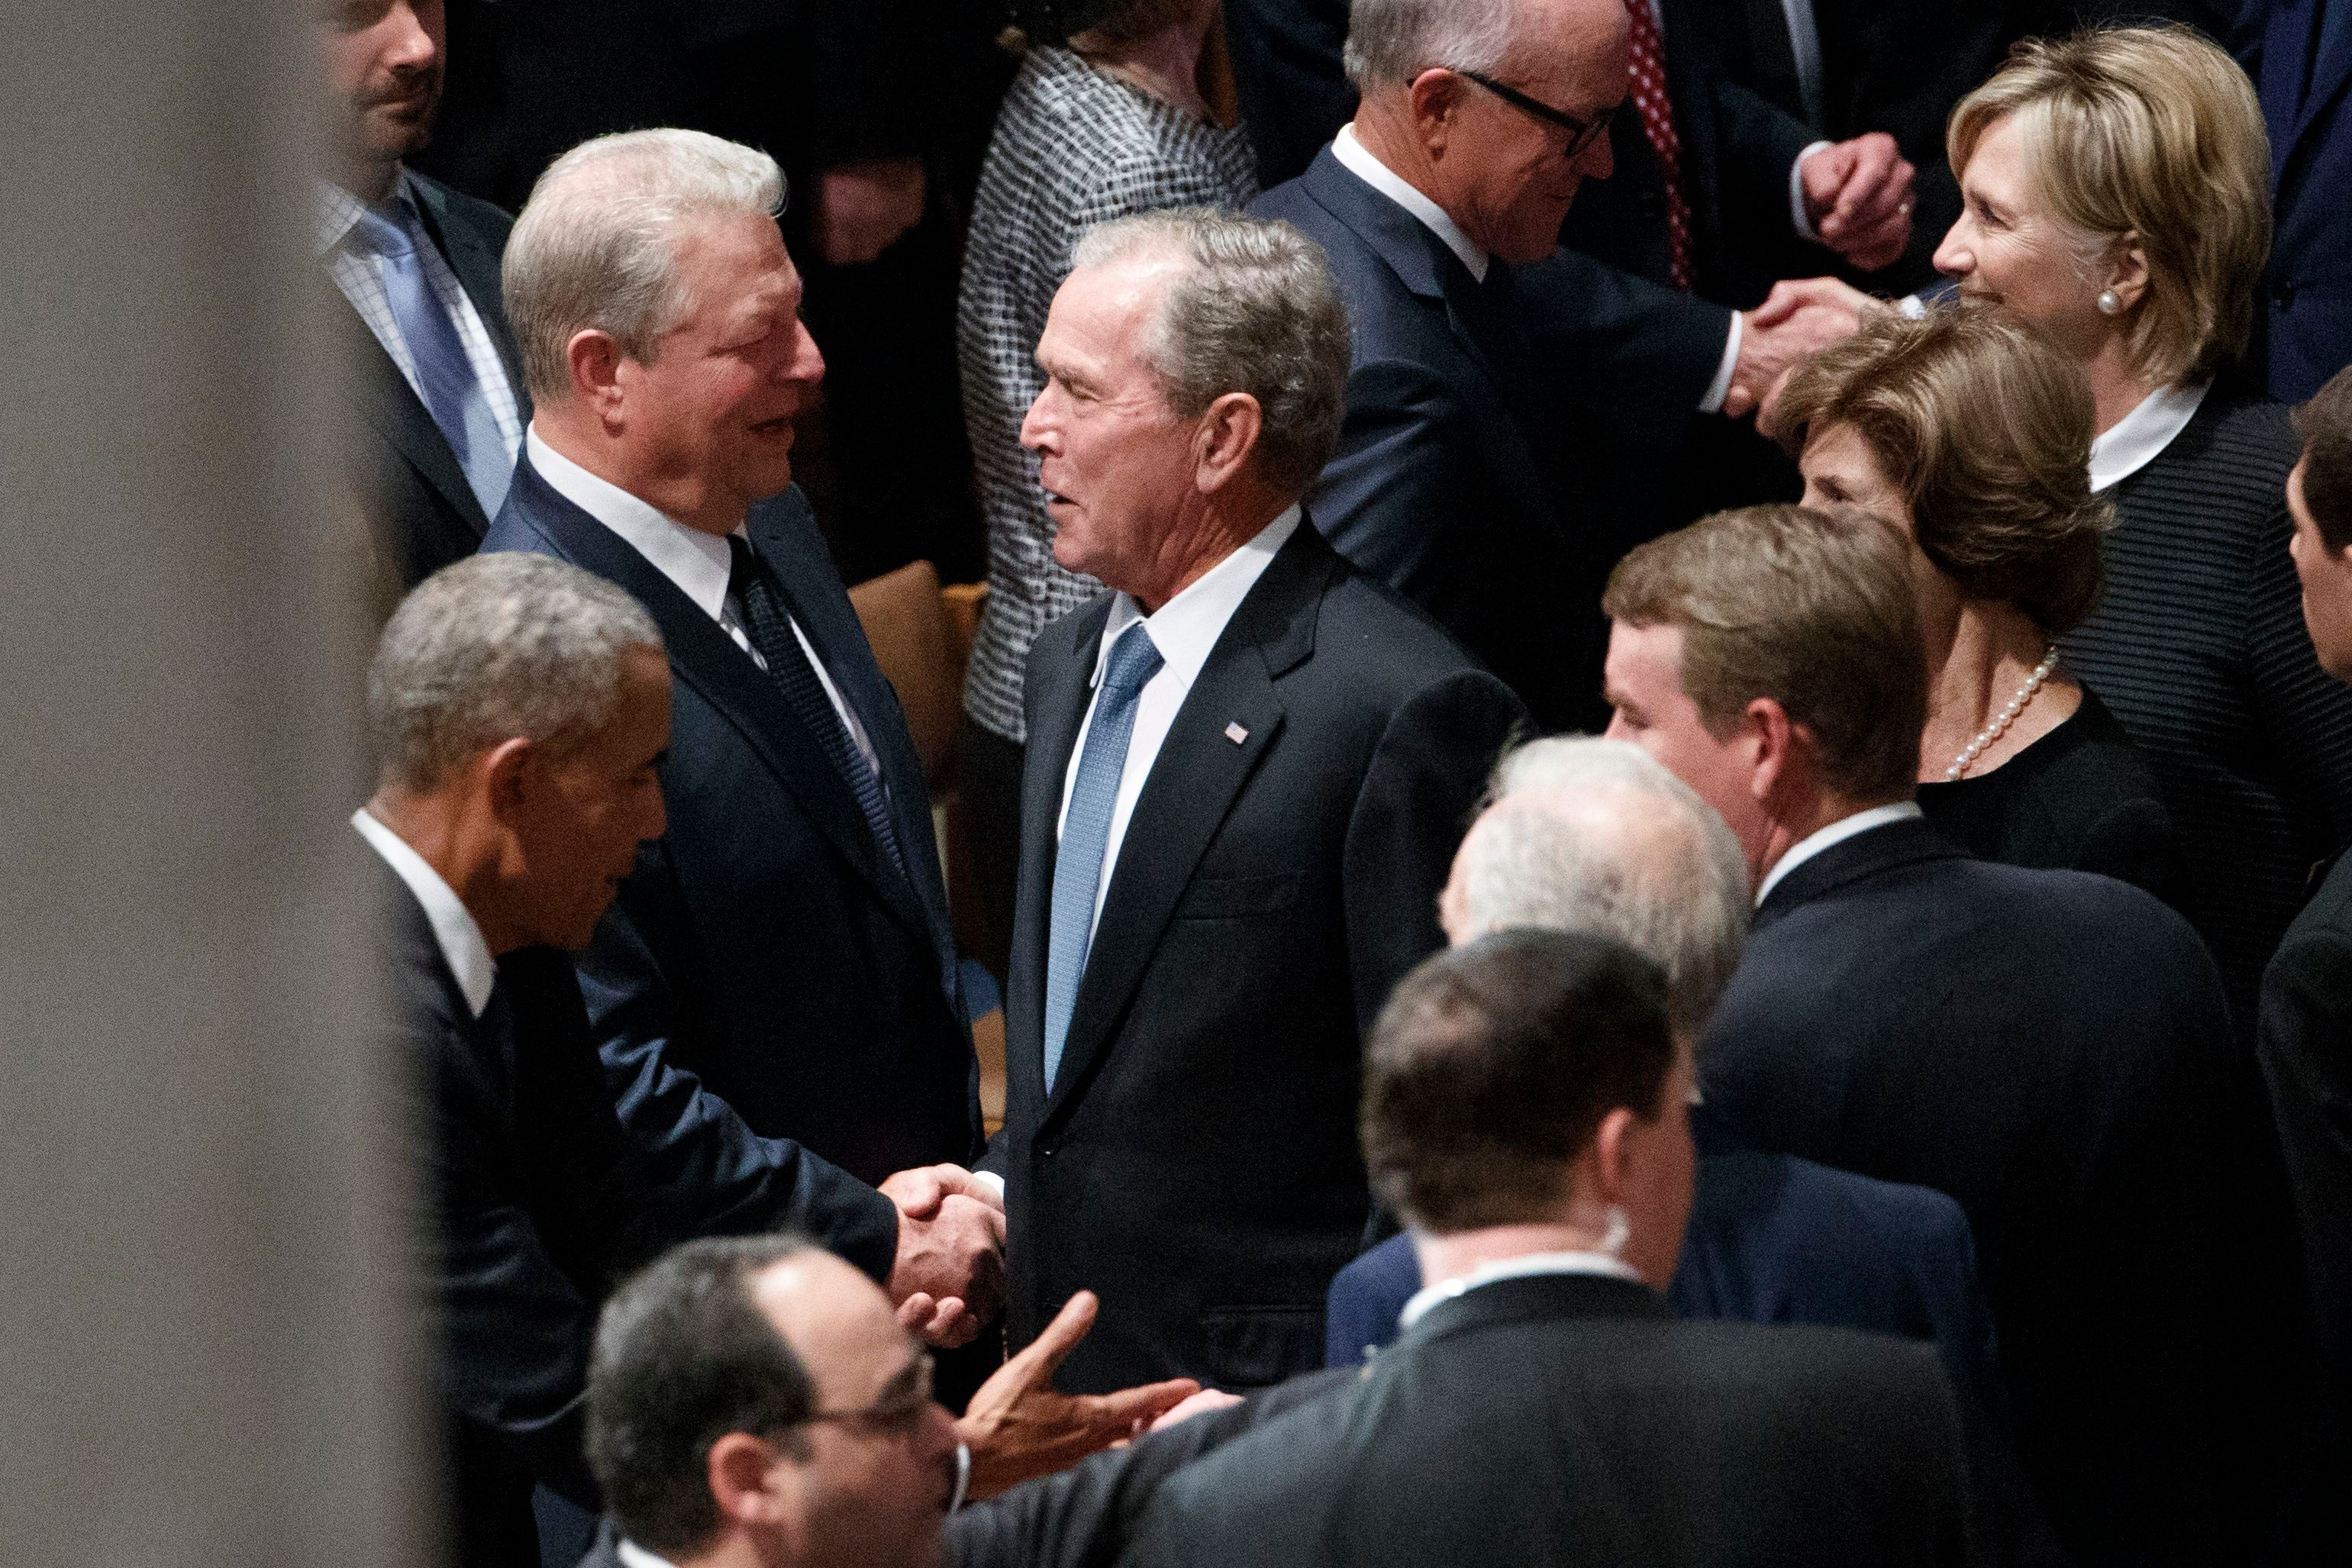 Former US President George W. Bush and former Vice President Al Gore – bitter political rivals – shake hands and John McCain's funeral at Washington National Cathedral Saturday, Sept. 1, 2018.